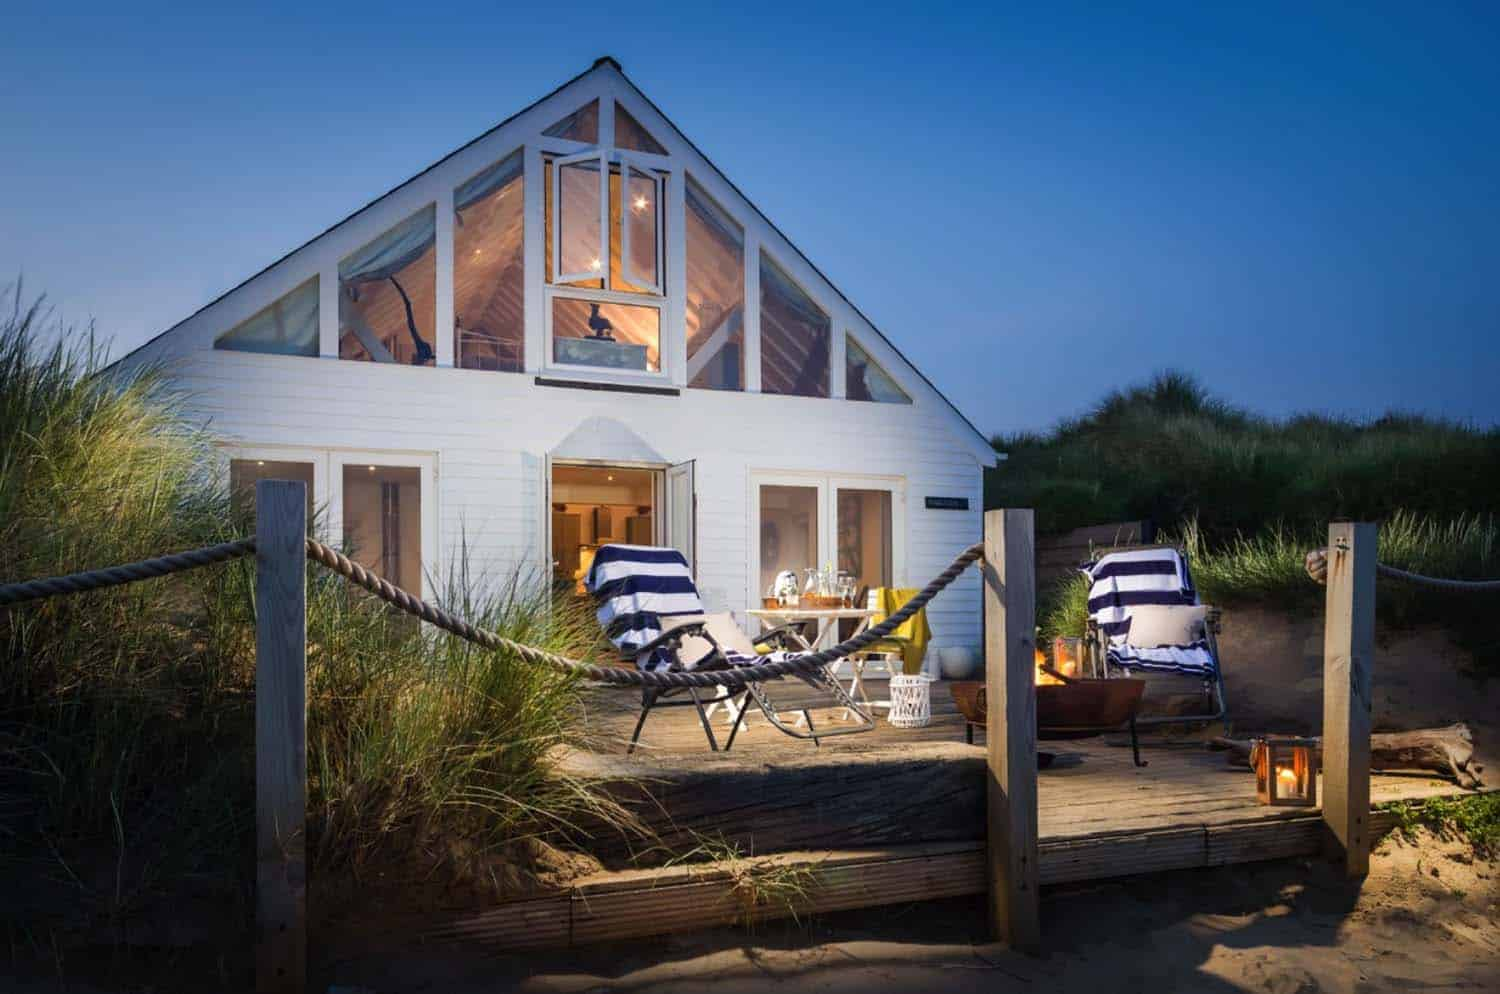 Barefoot Beach House-East Sussex-05-1 Kindesign